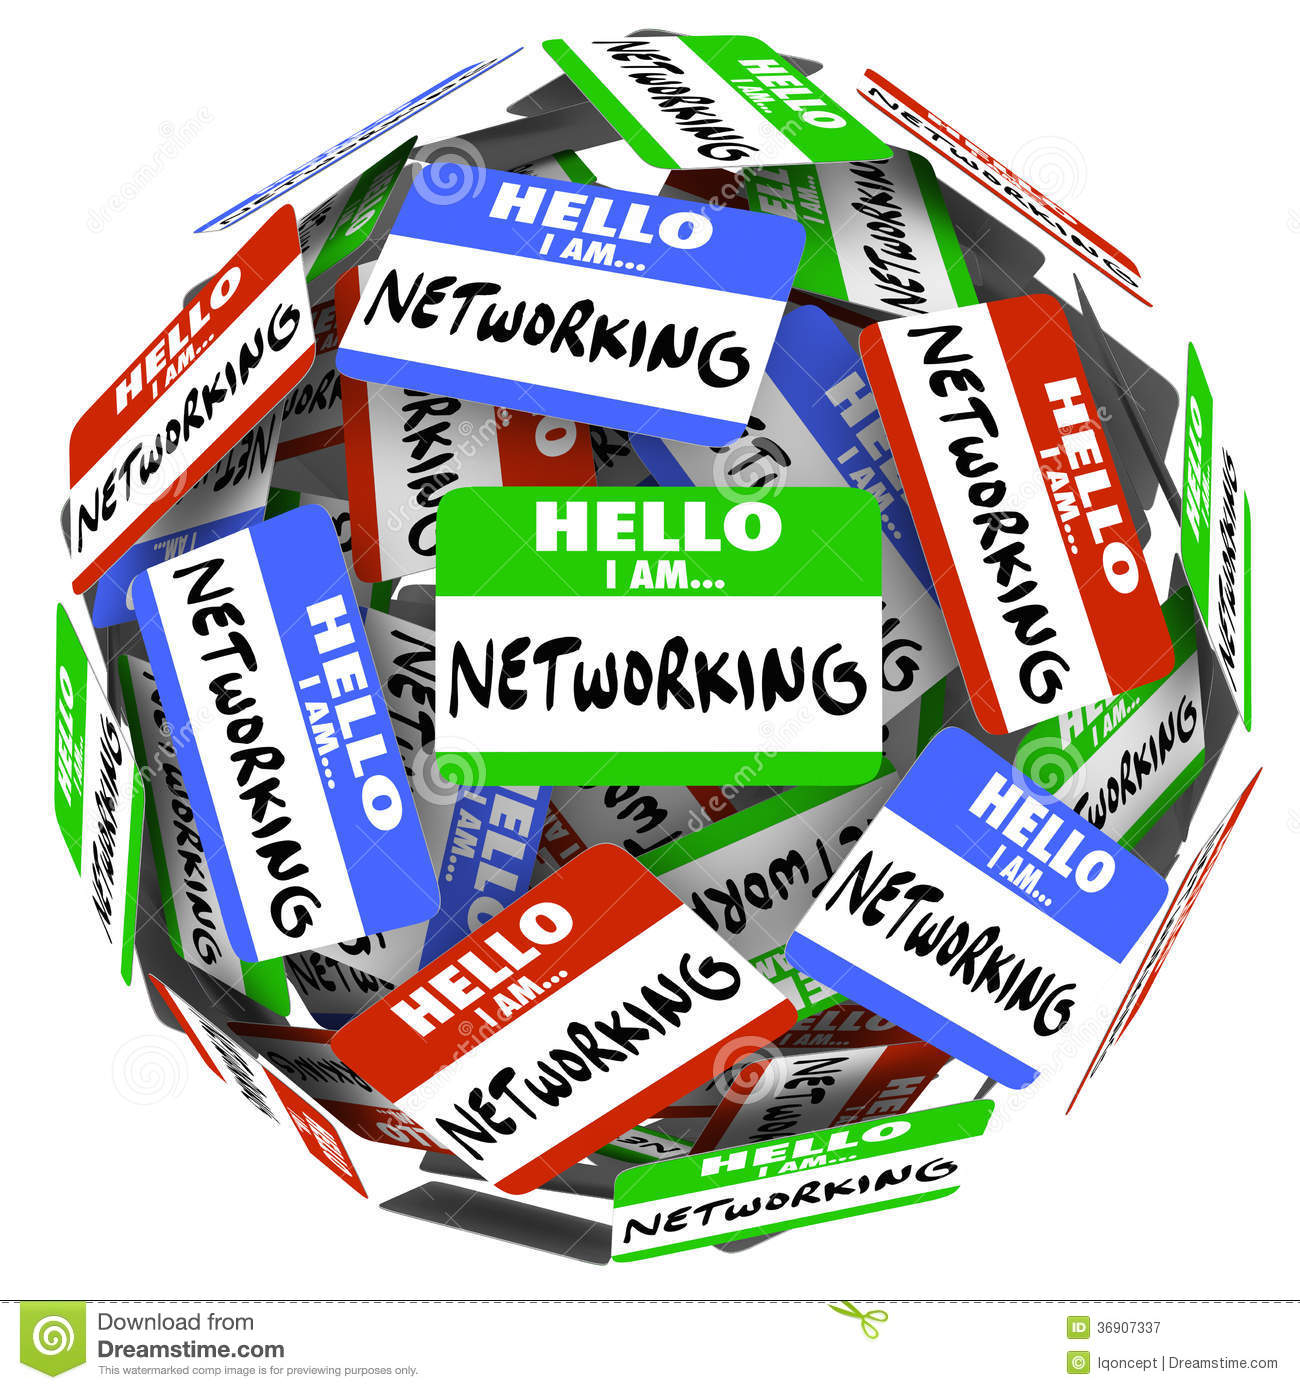 networking name tag sticker ball sphere meet greet new opportuni